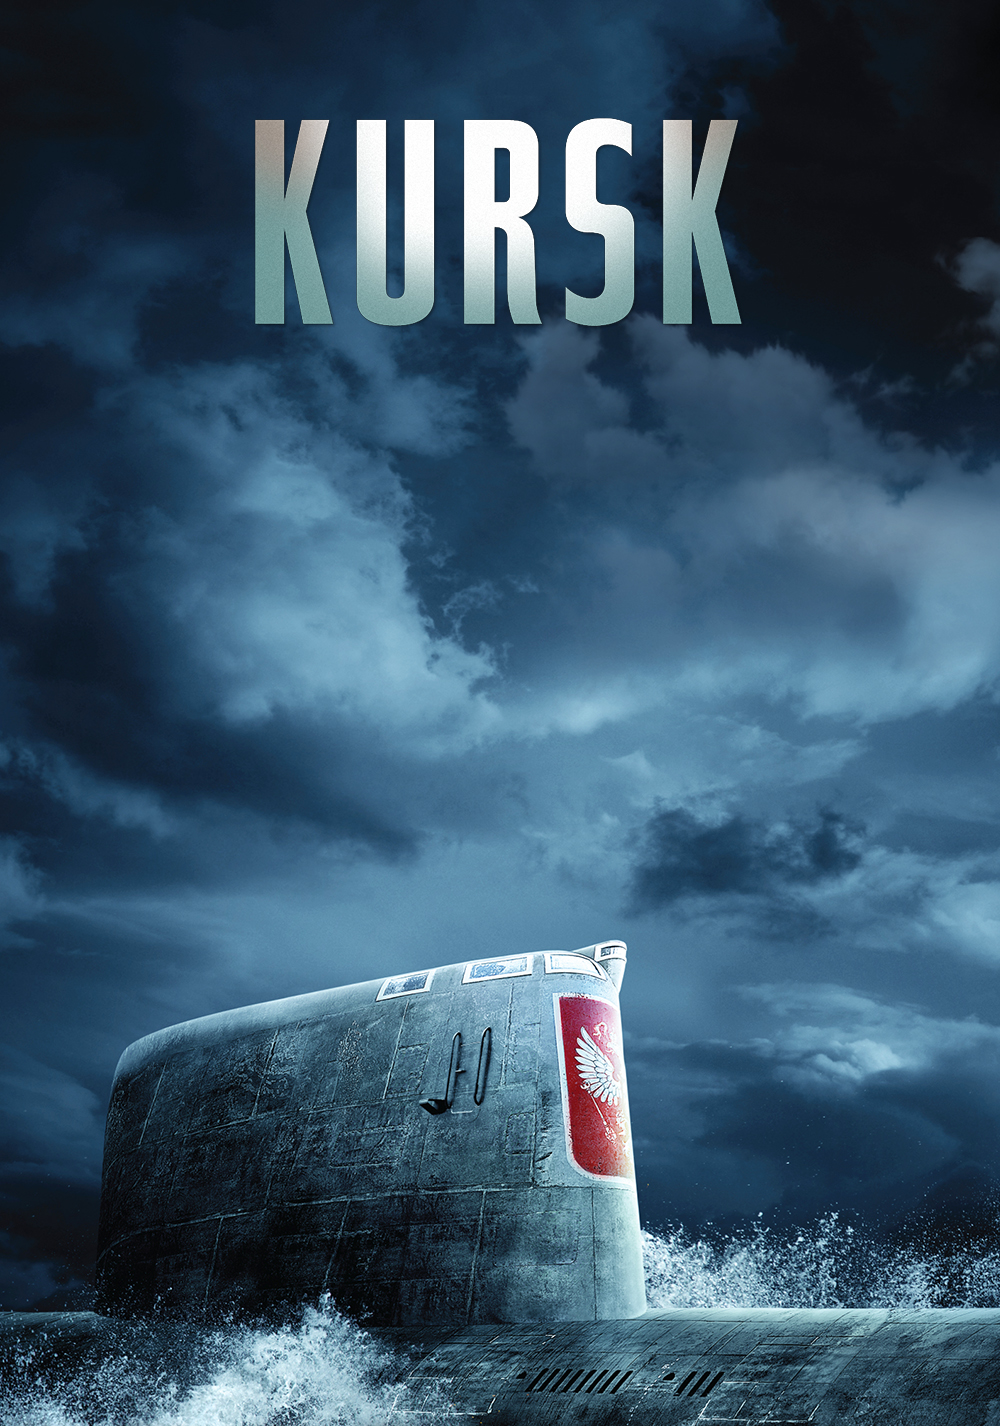 Kursk (2017) | Movie fanart | fanart tv